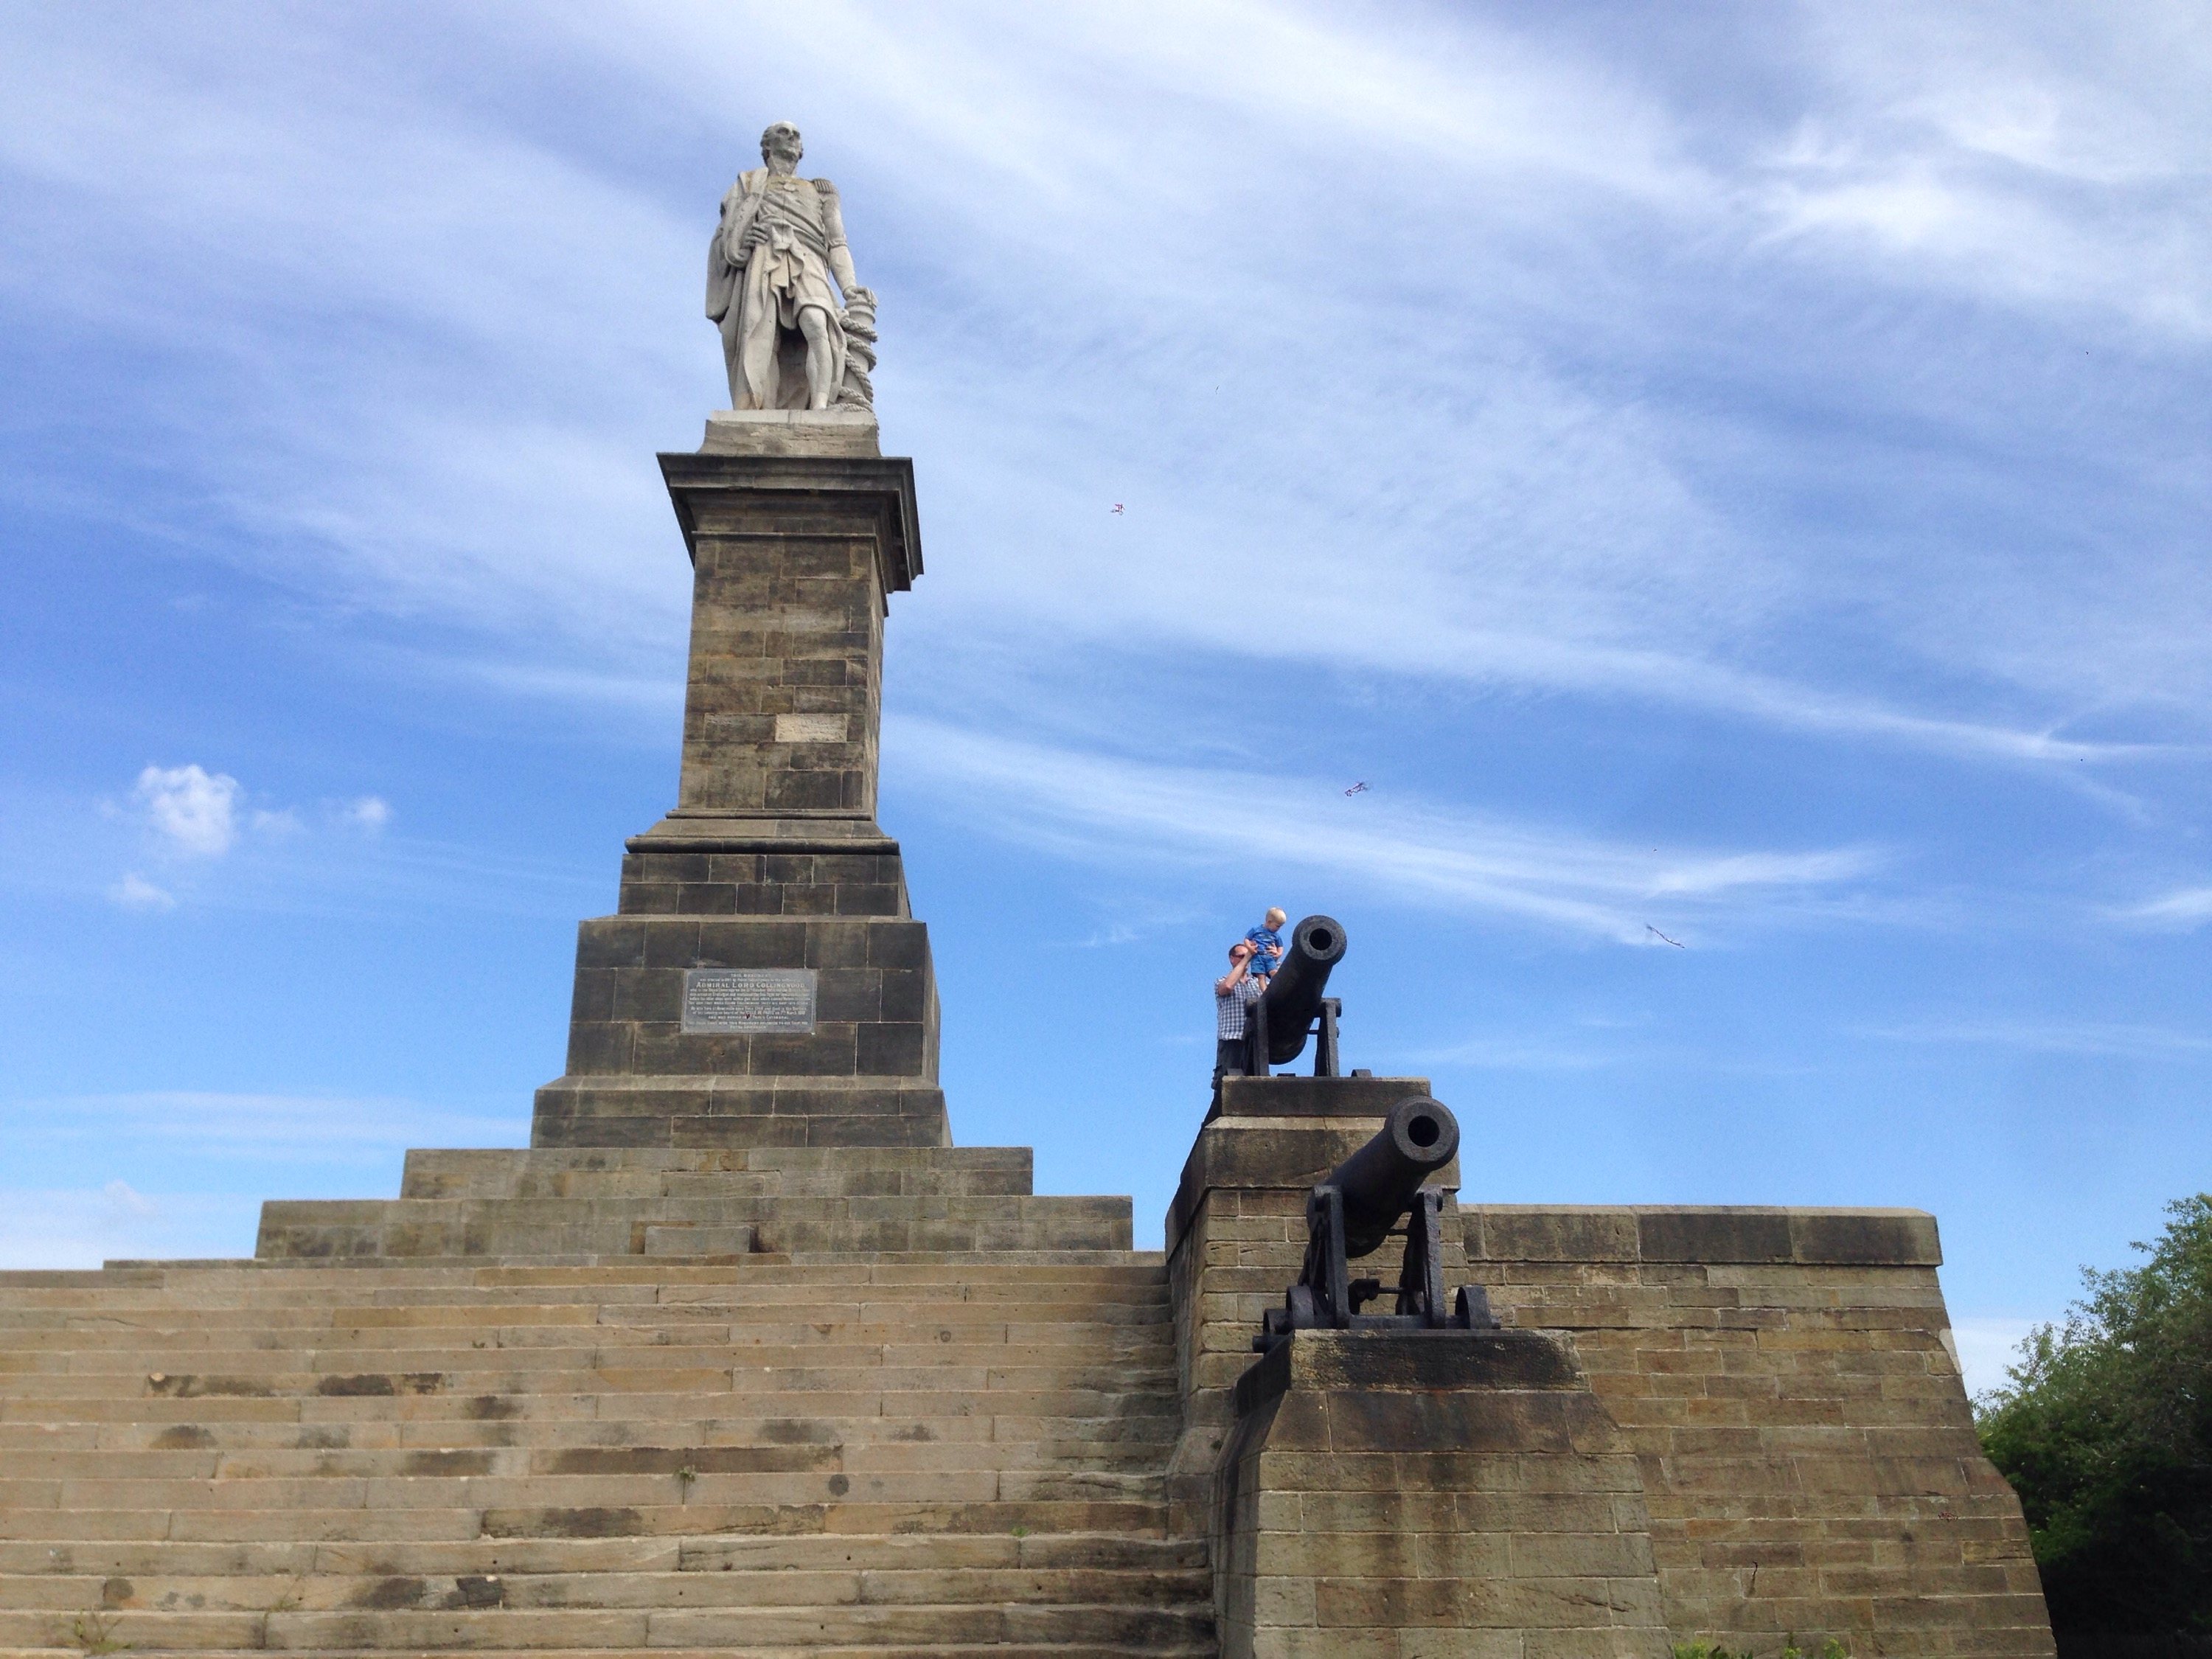 Lord Collingwood monument overlooks the mouth of the Tyne near Tynemouth, North East England